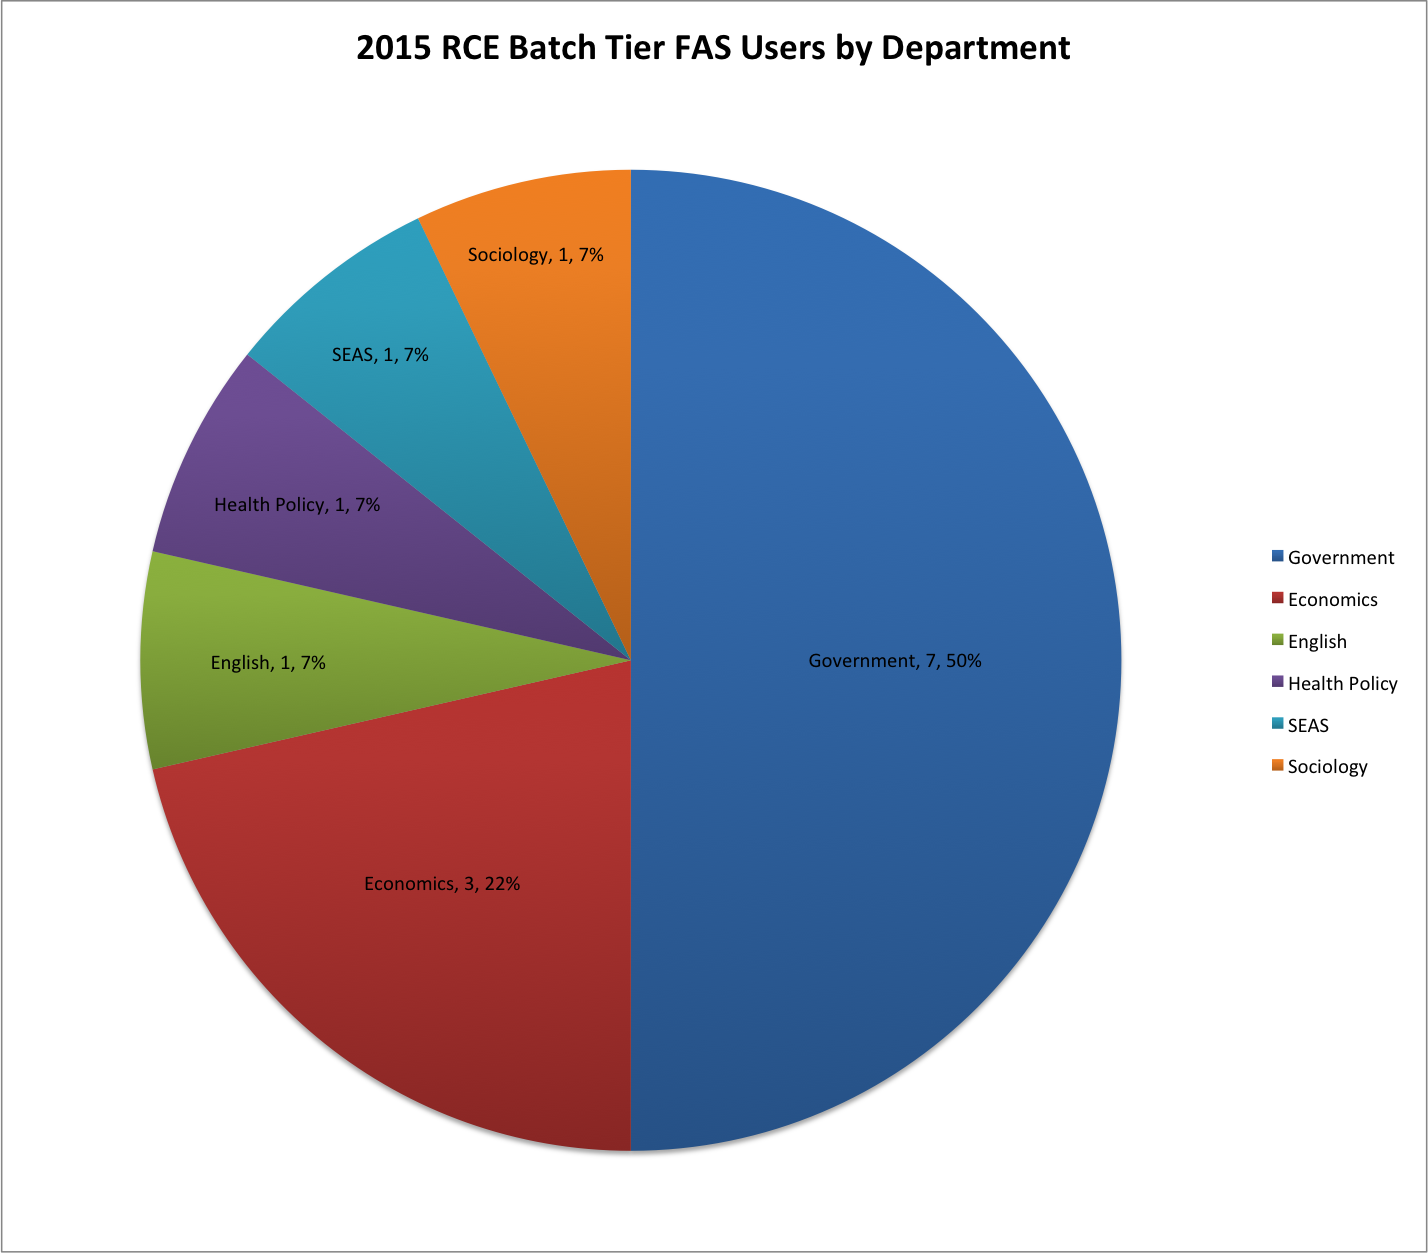 2015 RCE Batch Tier FAS Users by Department